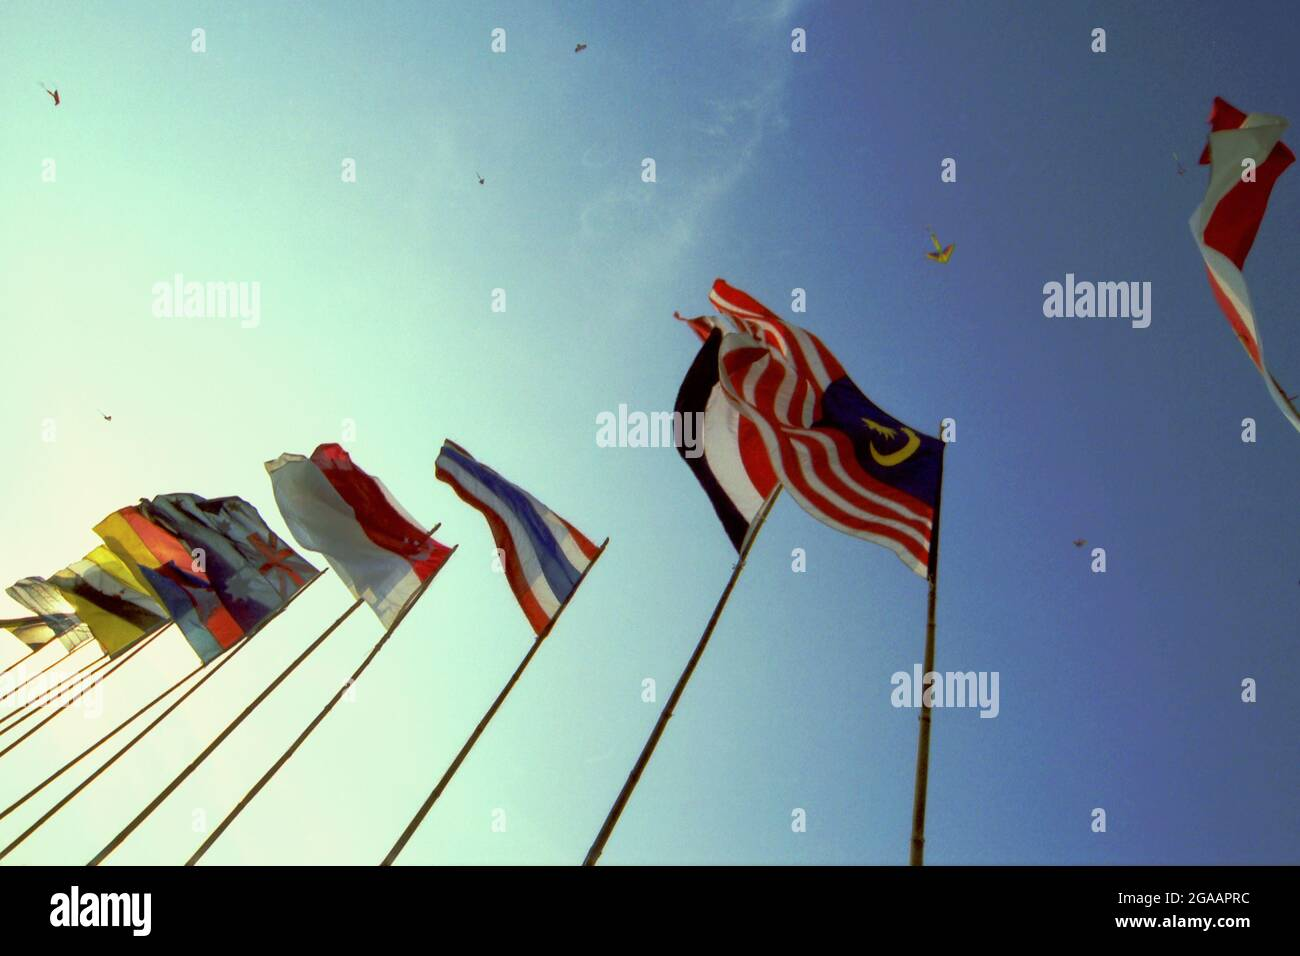 Flags of participating countries during the 2004 Jakarta International Kite Festival that held on July 9-11 at Carnival Beach in Ancol Dreamland, North Jakarta, Jakarta, Indonesia. Stock Photo